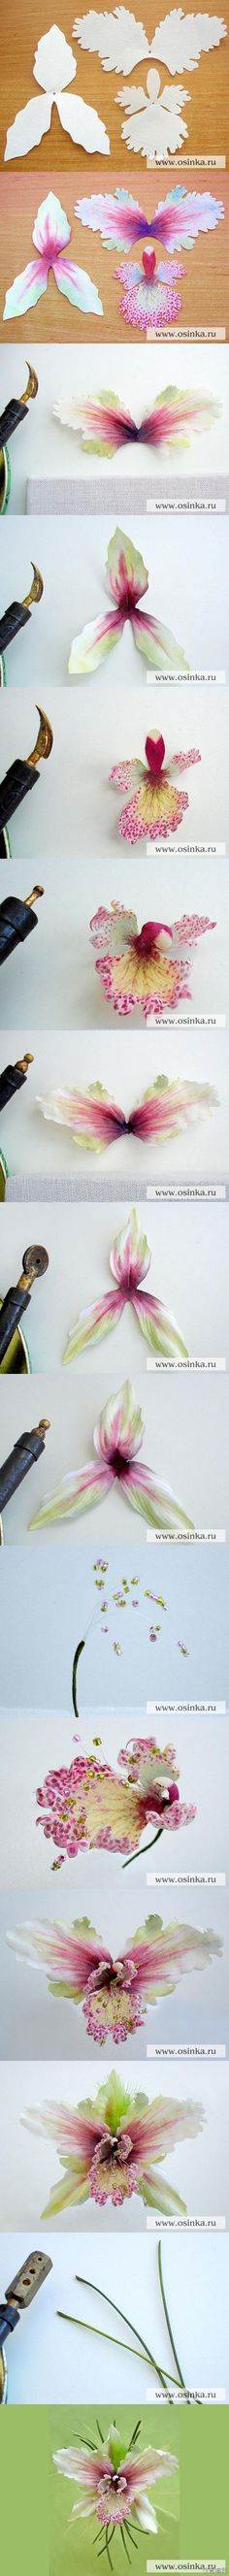 Fabric flower tutorial  that would work well with watercolor paper as well.